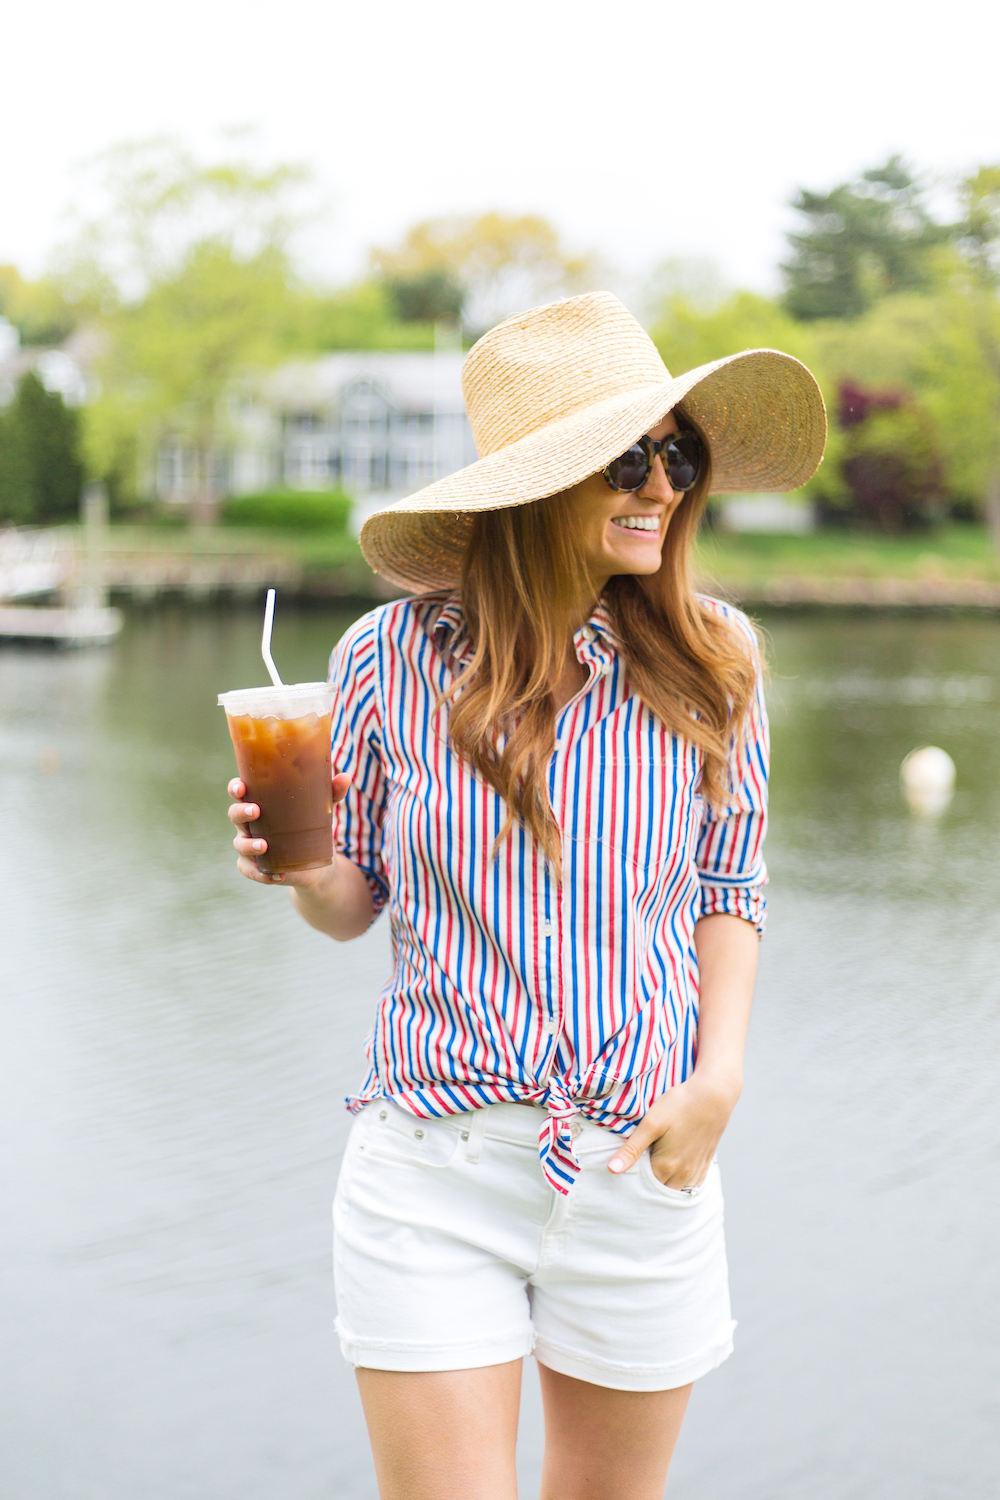 48cc0d3875 j.crew classic-fit boy shirt in red-and-blue stripe straw sun hat and white  denim shorts